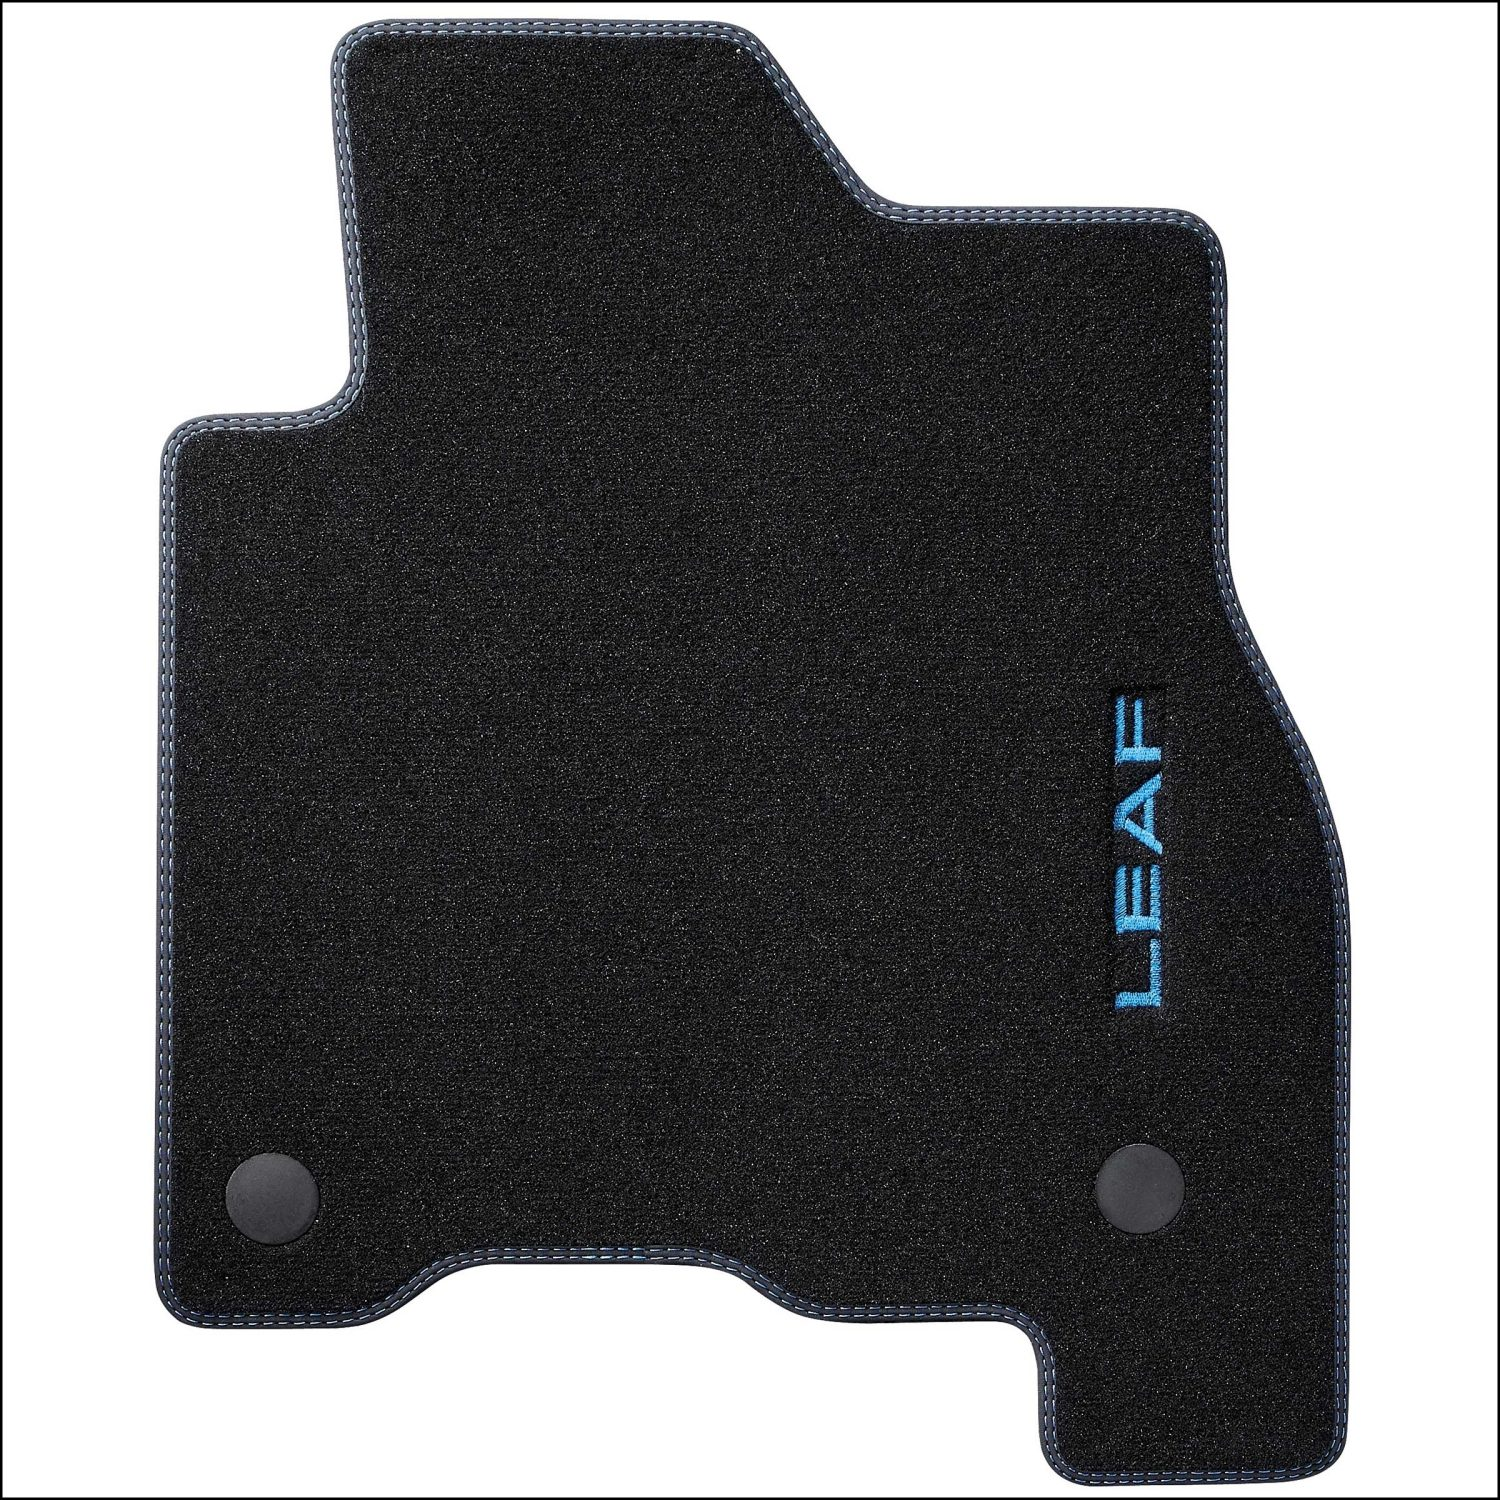 Nissan LEAF velour mat double stitching blue